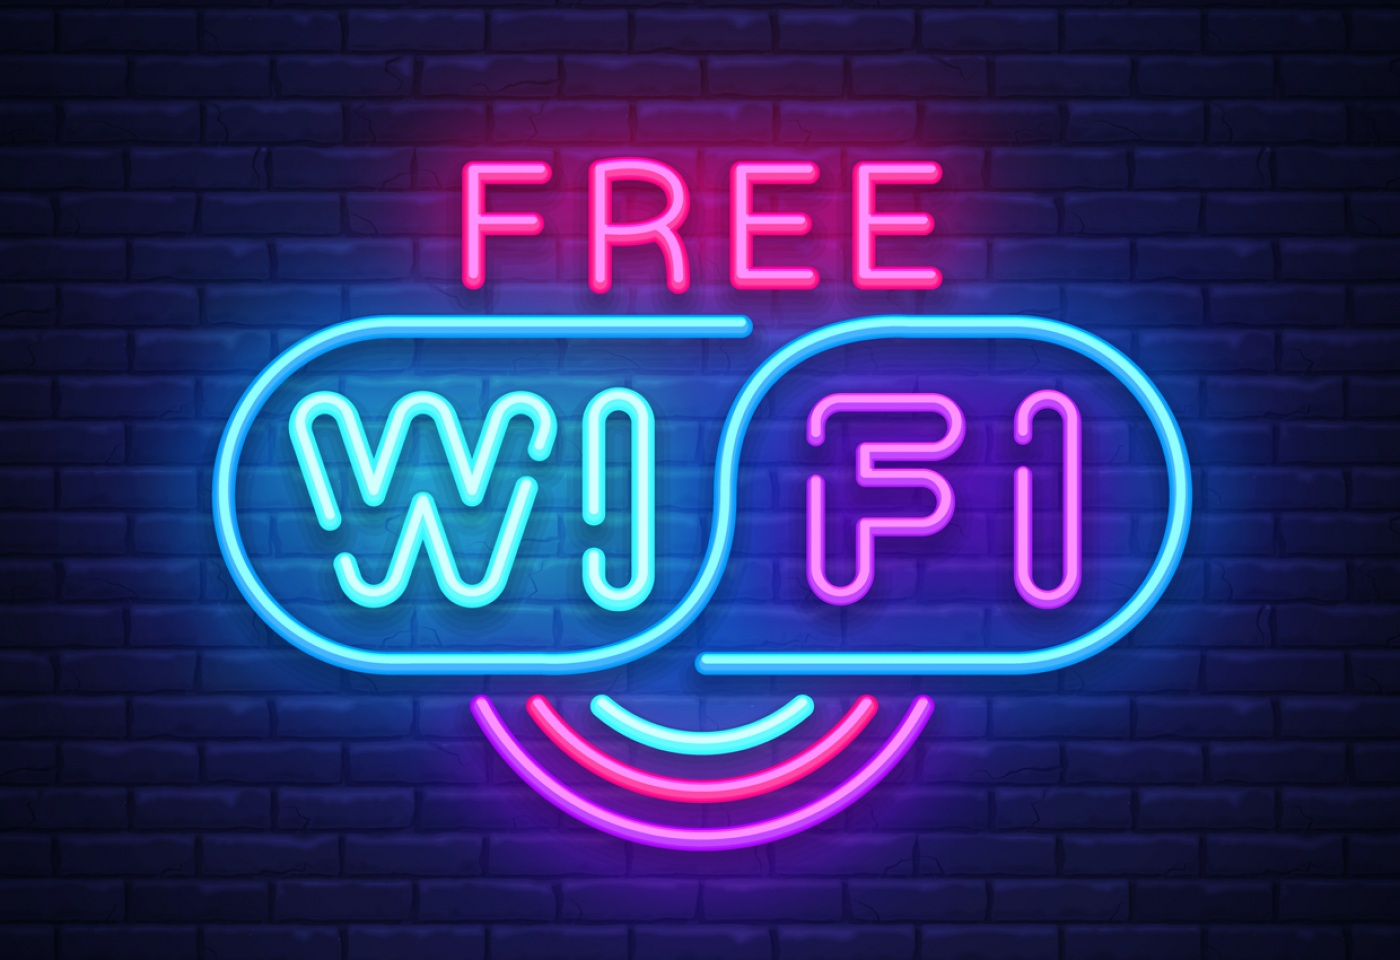 Neon sign that says free wi-fi